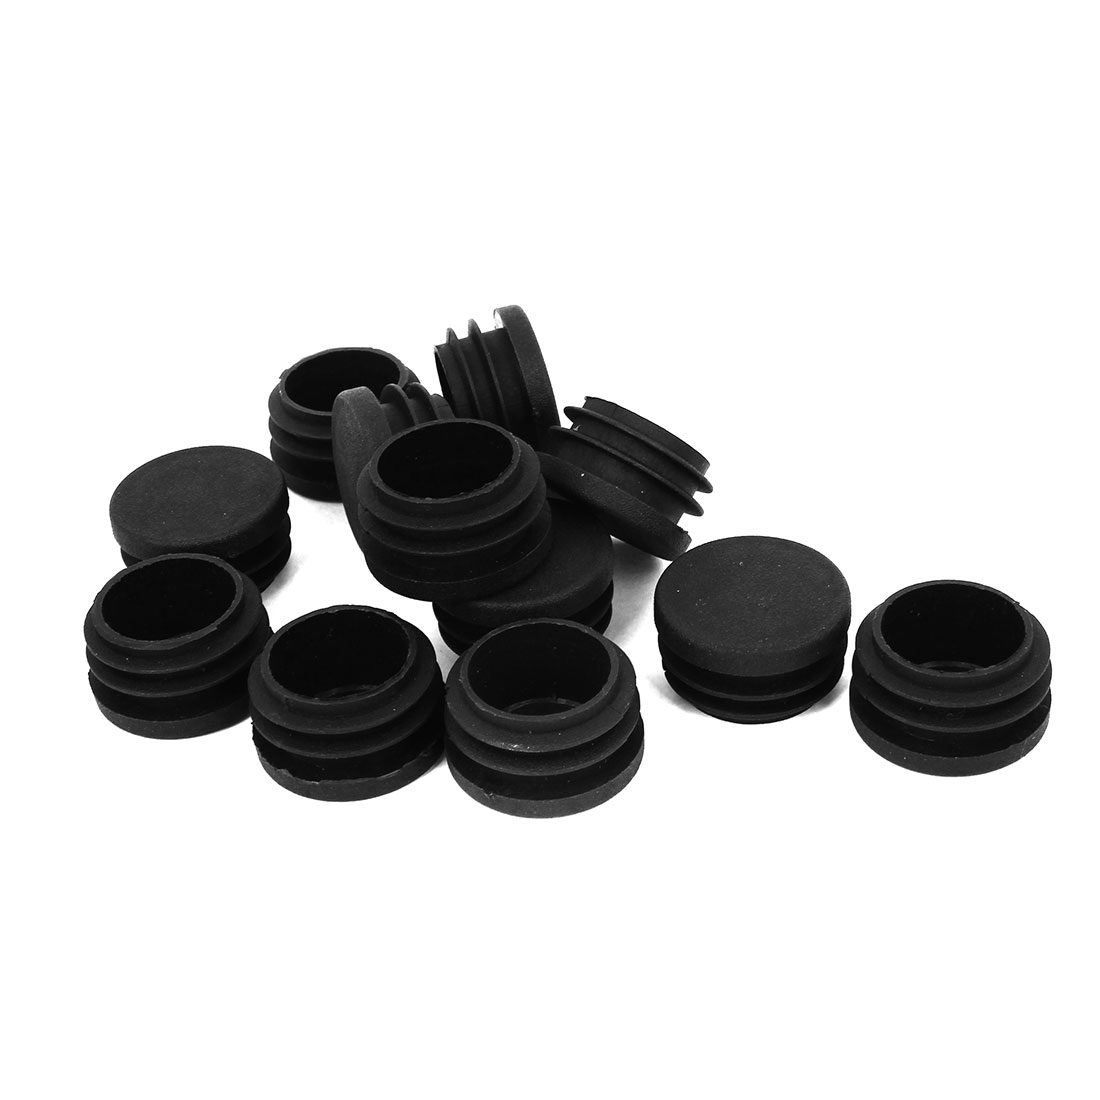 12 Pcs Black Plastic Inserts Blanking End Caps Covers 30mm for Round Tube Pipe